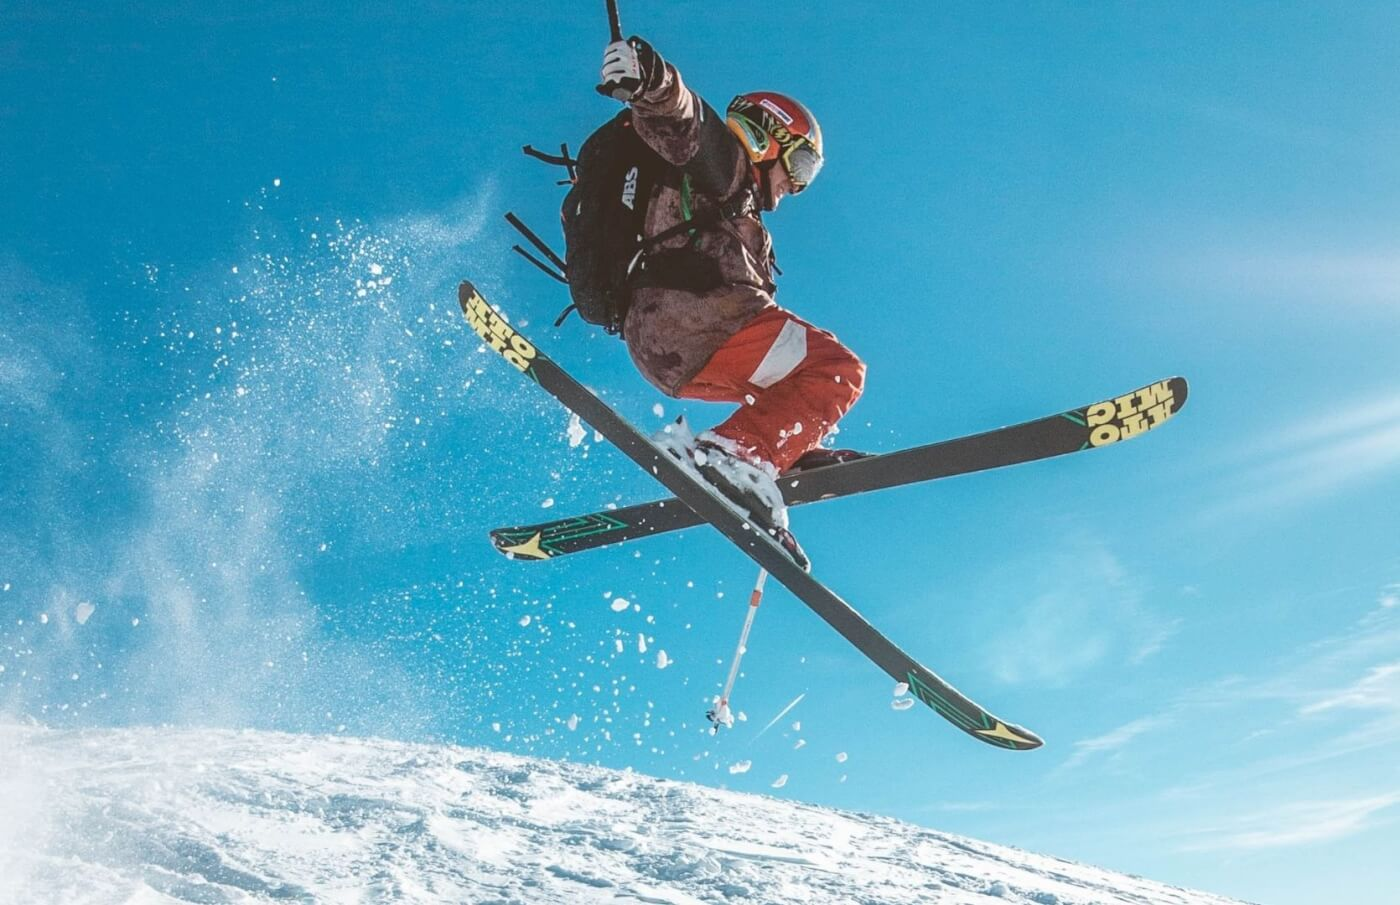 And the Most Vegan-Friendly Ski Resort Is …